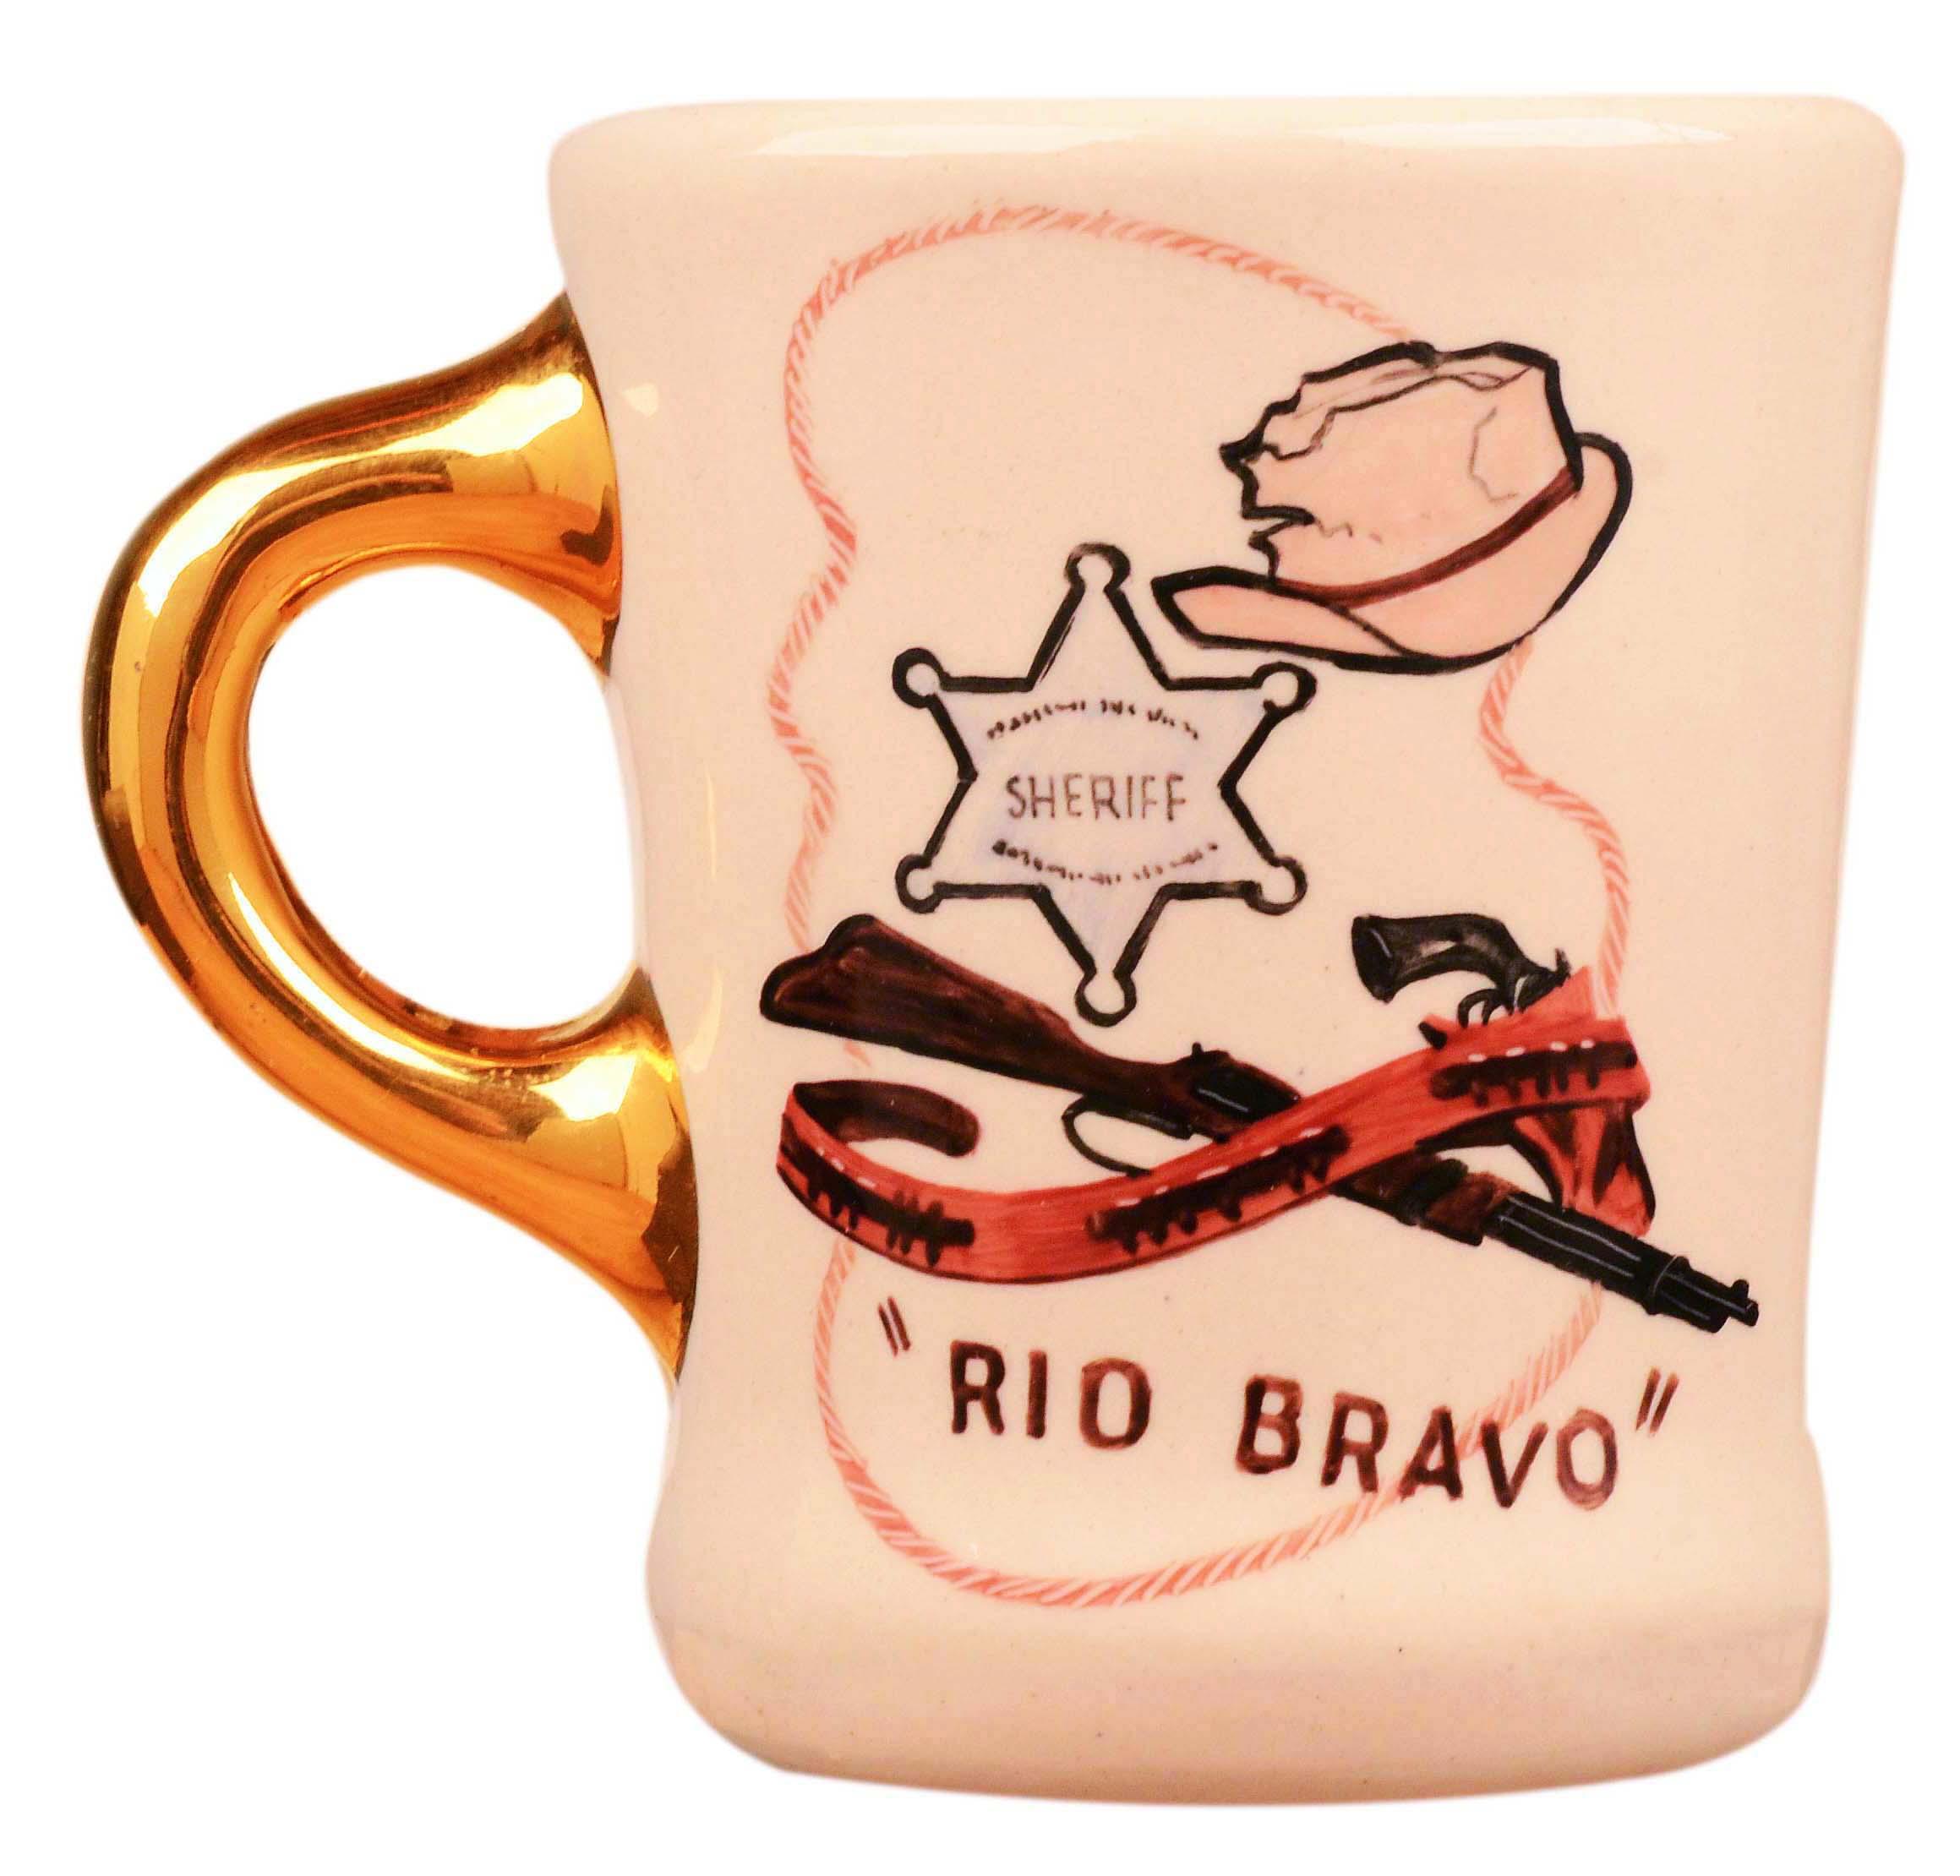 John Wayne mug for the 1959 movie Rio Bravo, front.